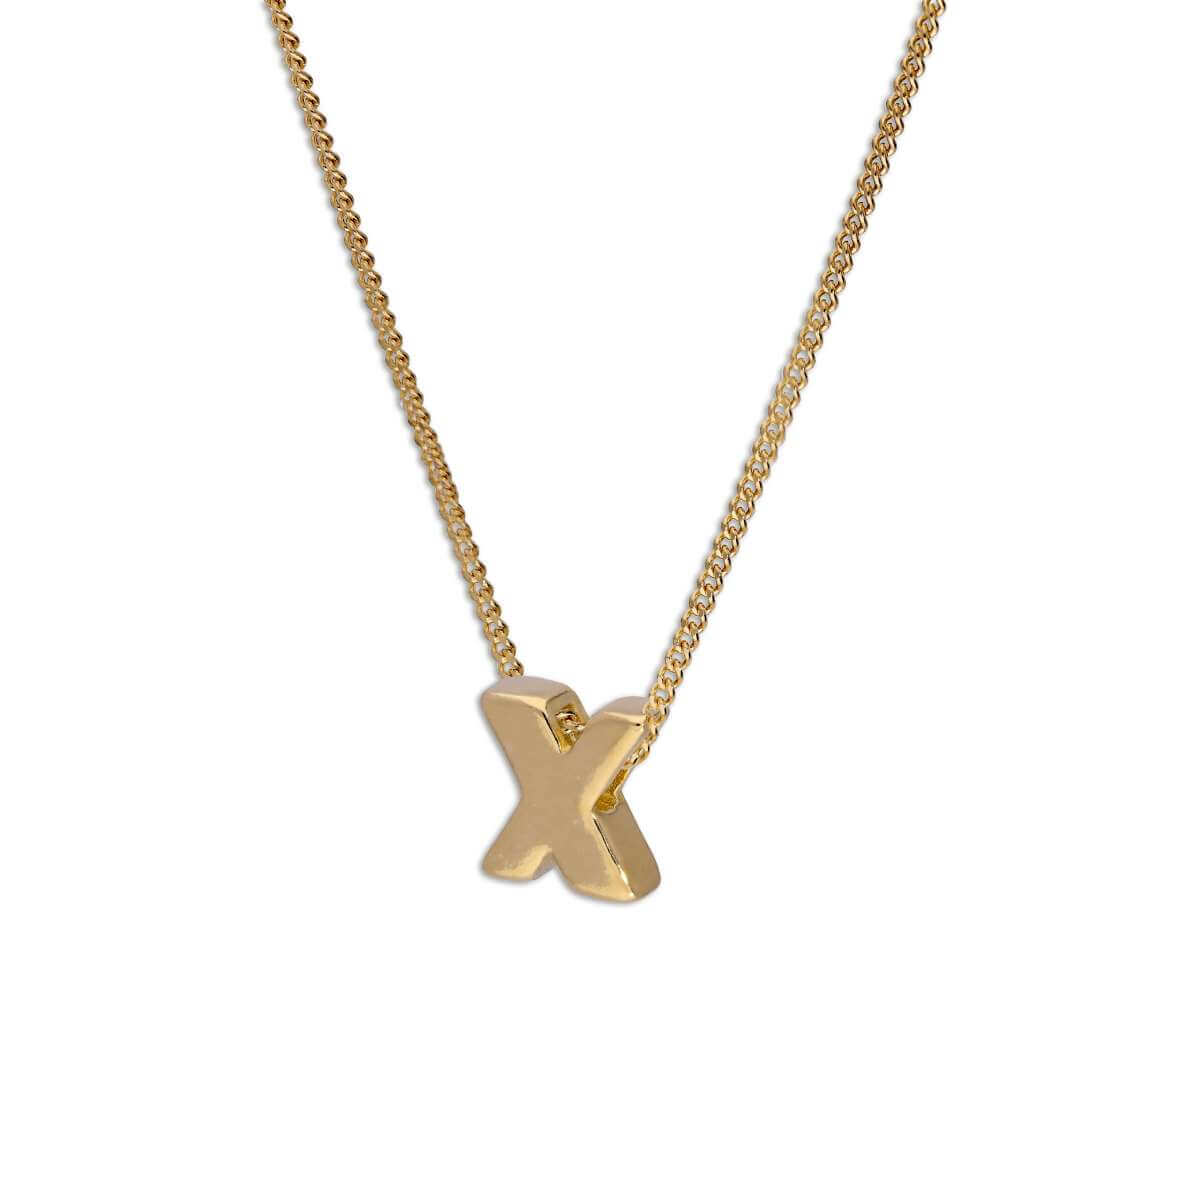 Gold Plated Sterling Silver Threader Letter X Bead Necklace 16 - 22 Inches